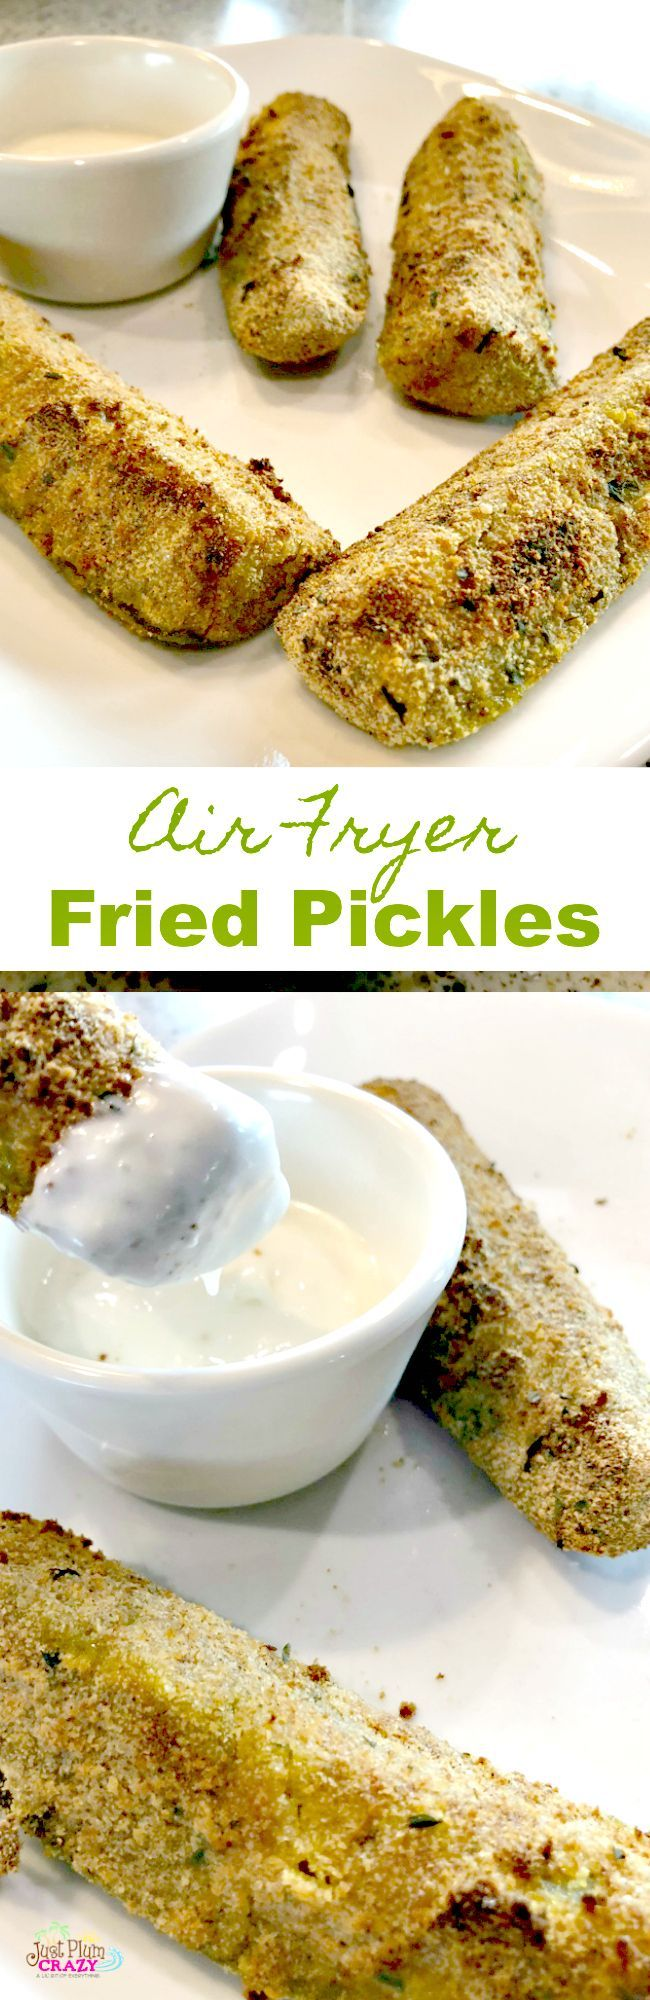 Air Fryer Pickles Recipe Air fryer recipes, Fried